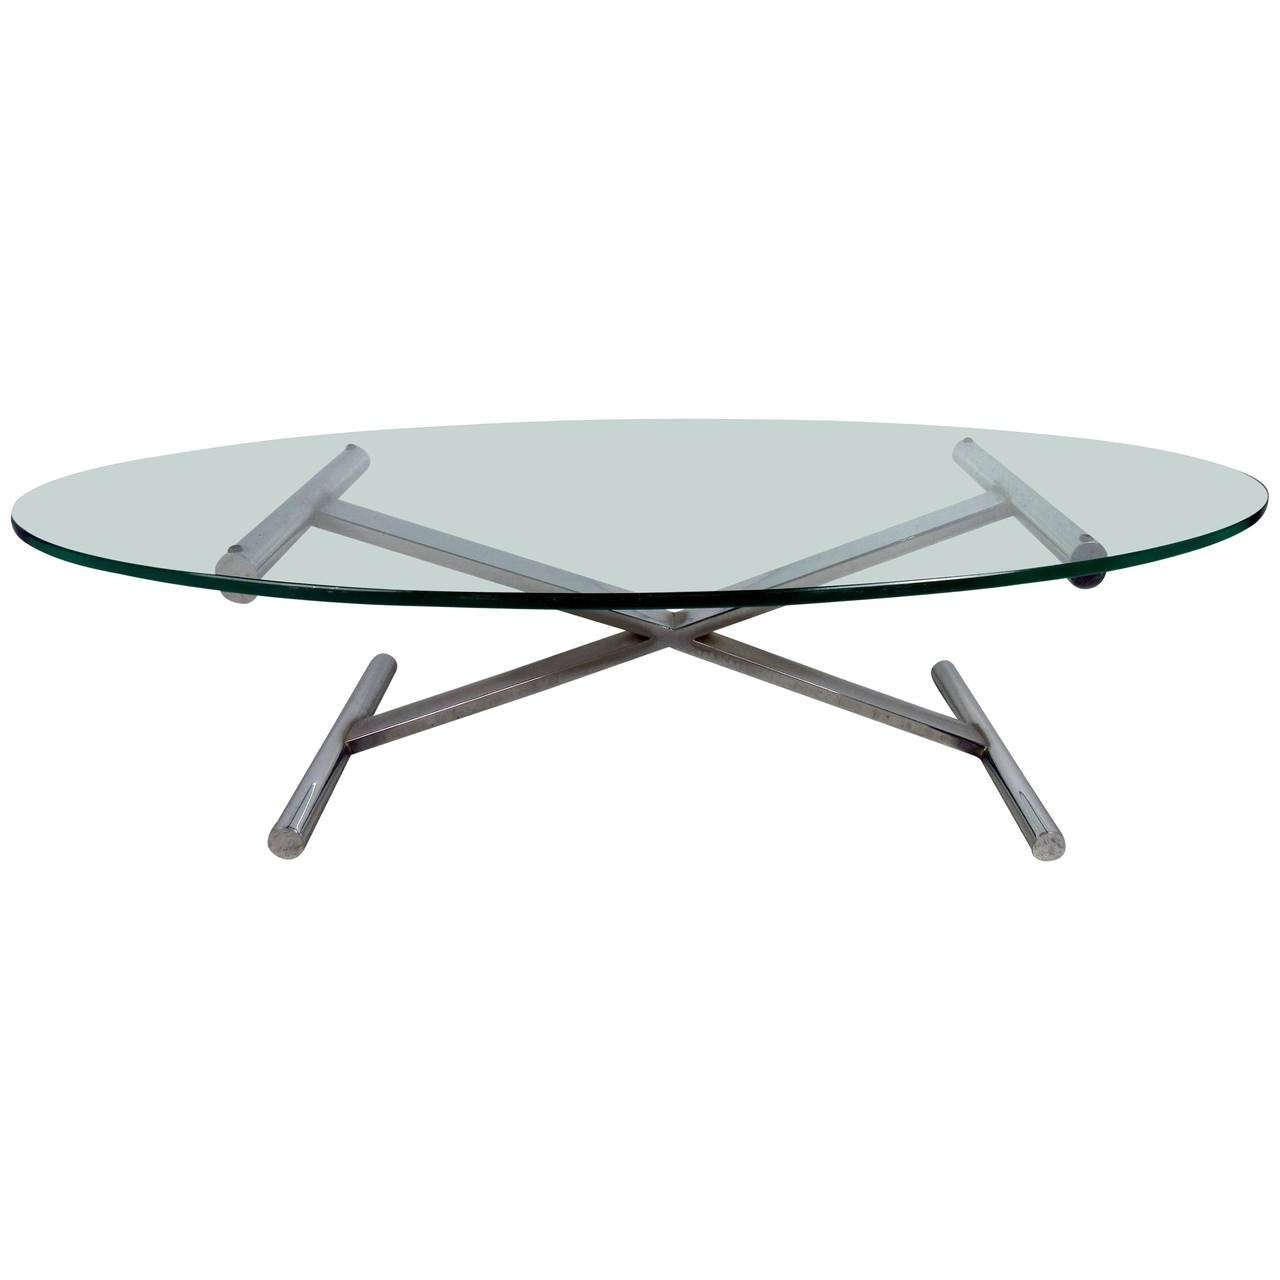 Newest Oval Shaped Glass Coffee Tables Regarding Oval Shaped Glass Top Coffee Table With Chrome Base For Sale At (View 12 of 20)